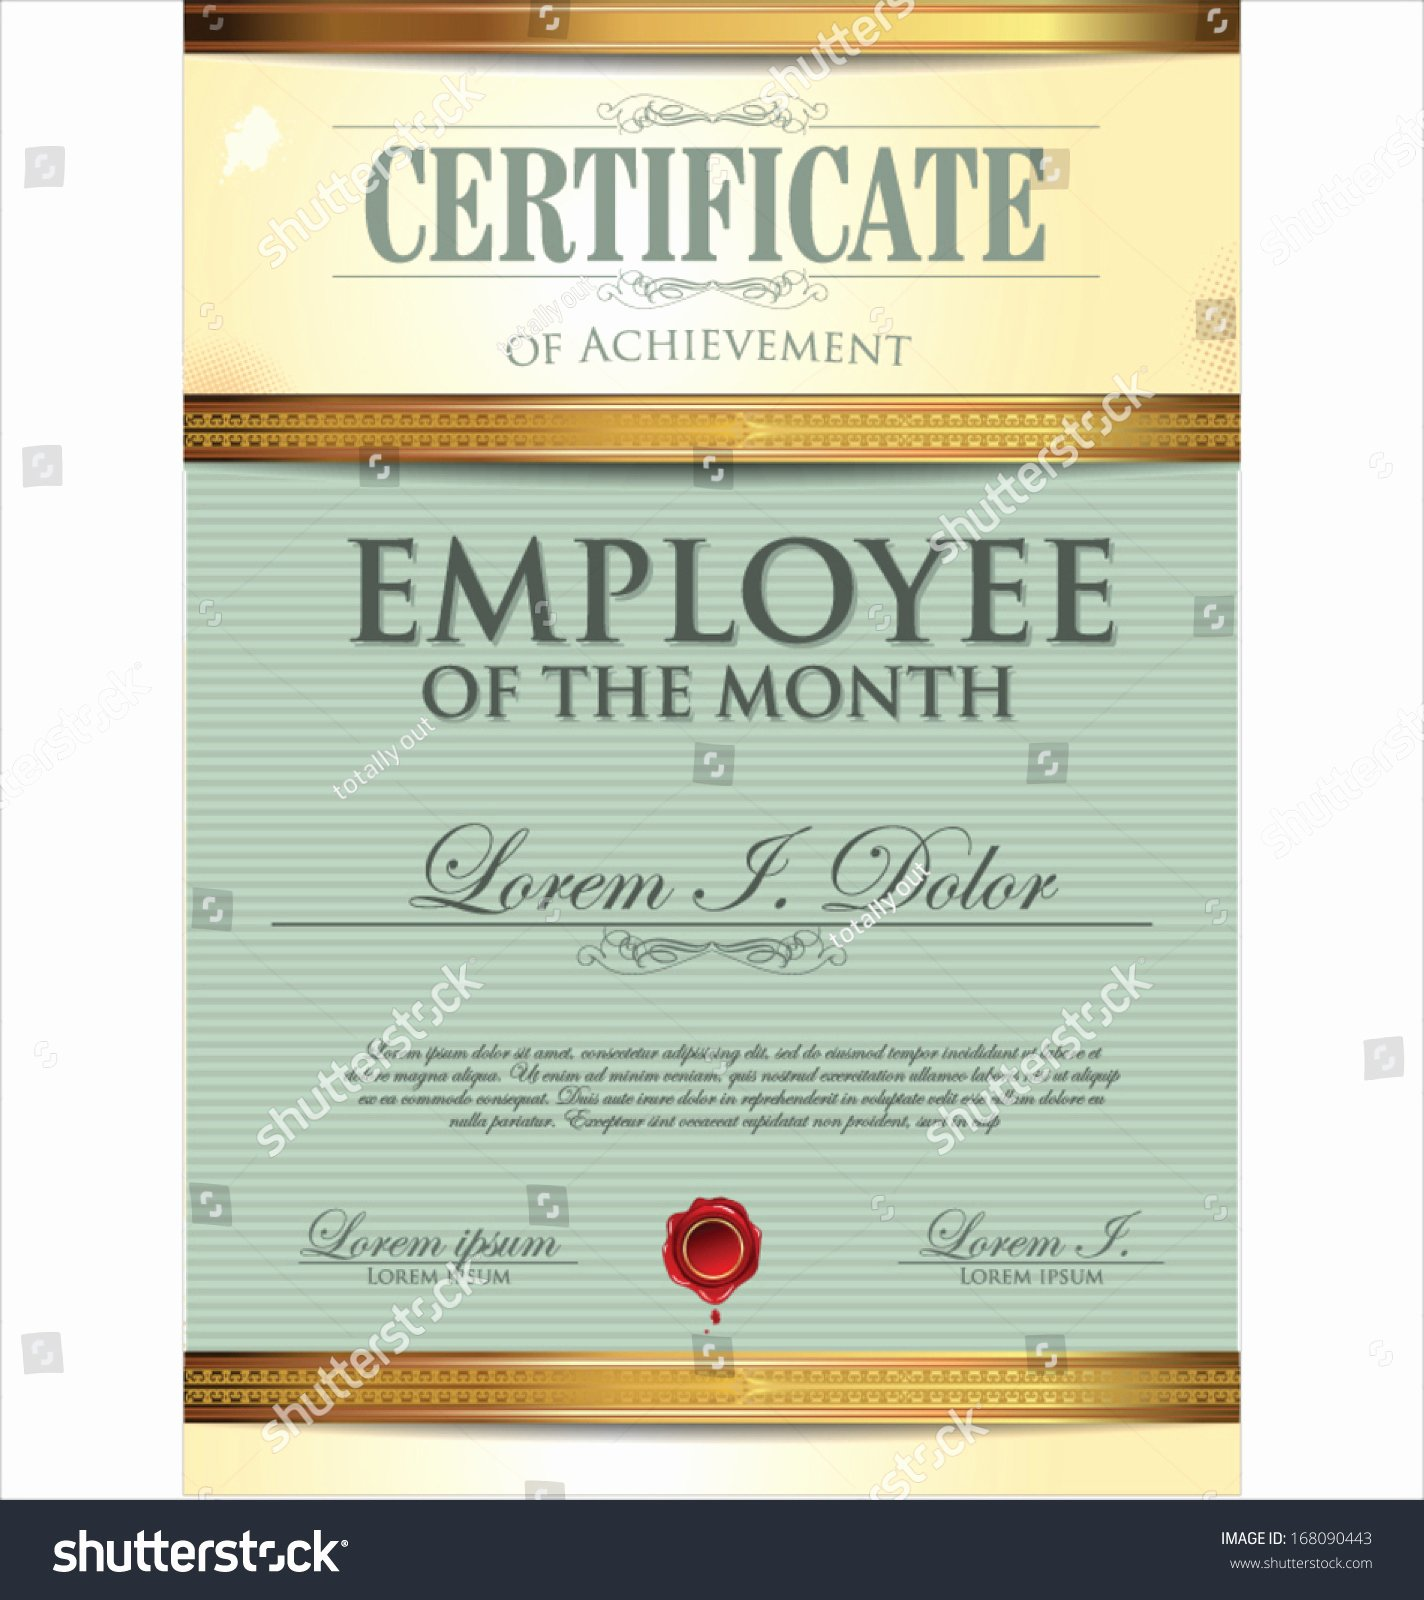 Employee Of the Month Frame Template Luxury Certificate Template Employee Month Stock Vector